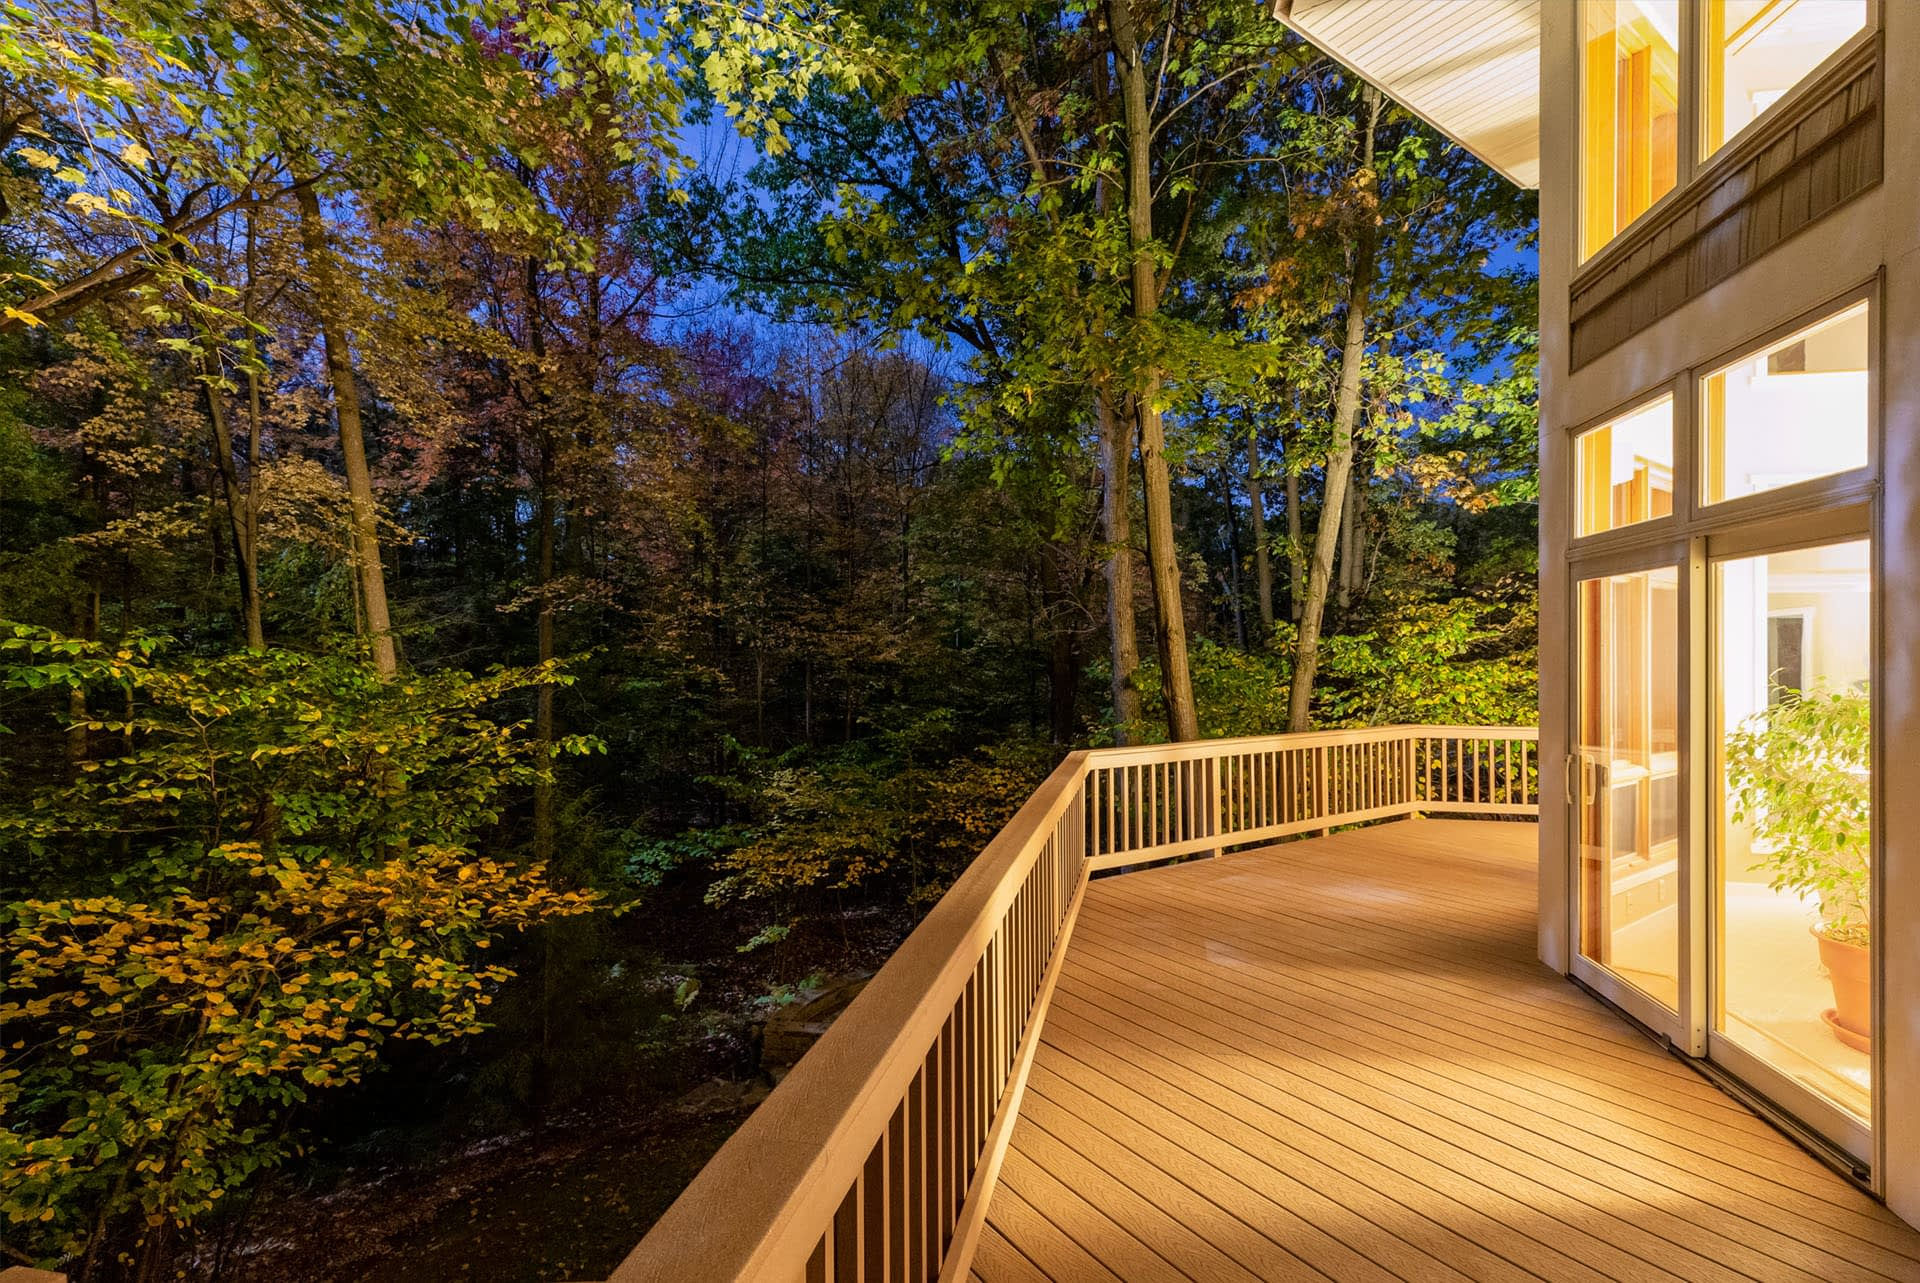 timber-decking-wooden-deck-boards-hardwood-pressure-treated-smooth-terrace